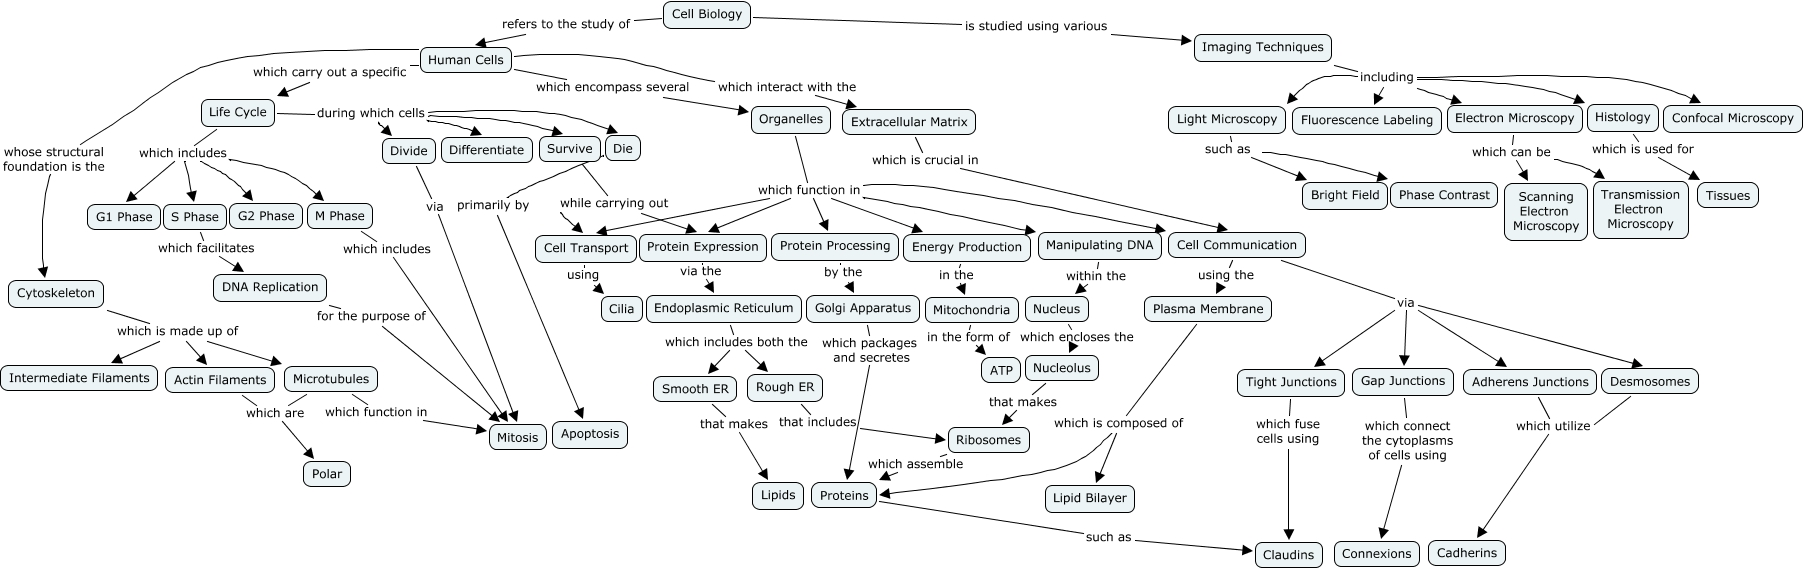 Cell Cycle Concept Map Cell Biology Concept Map